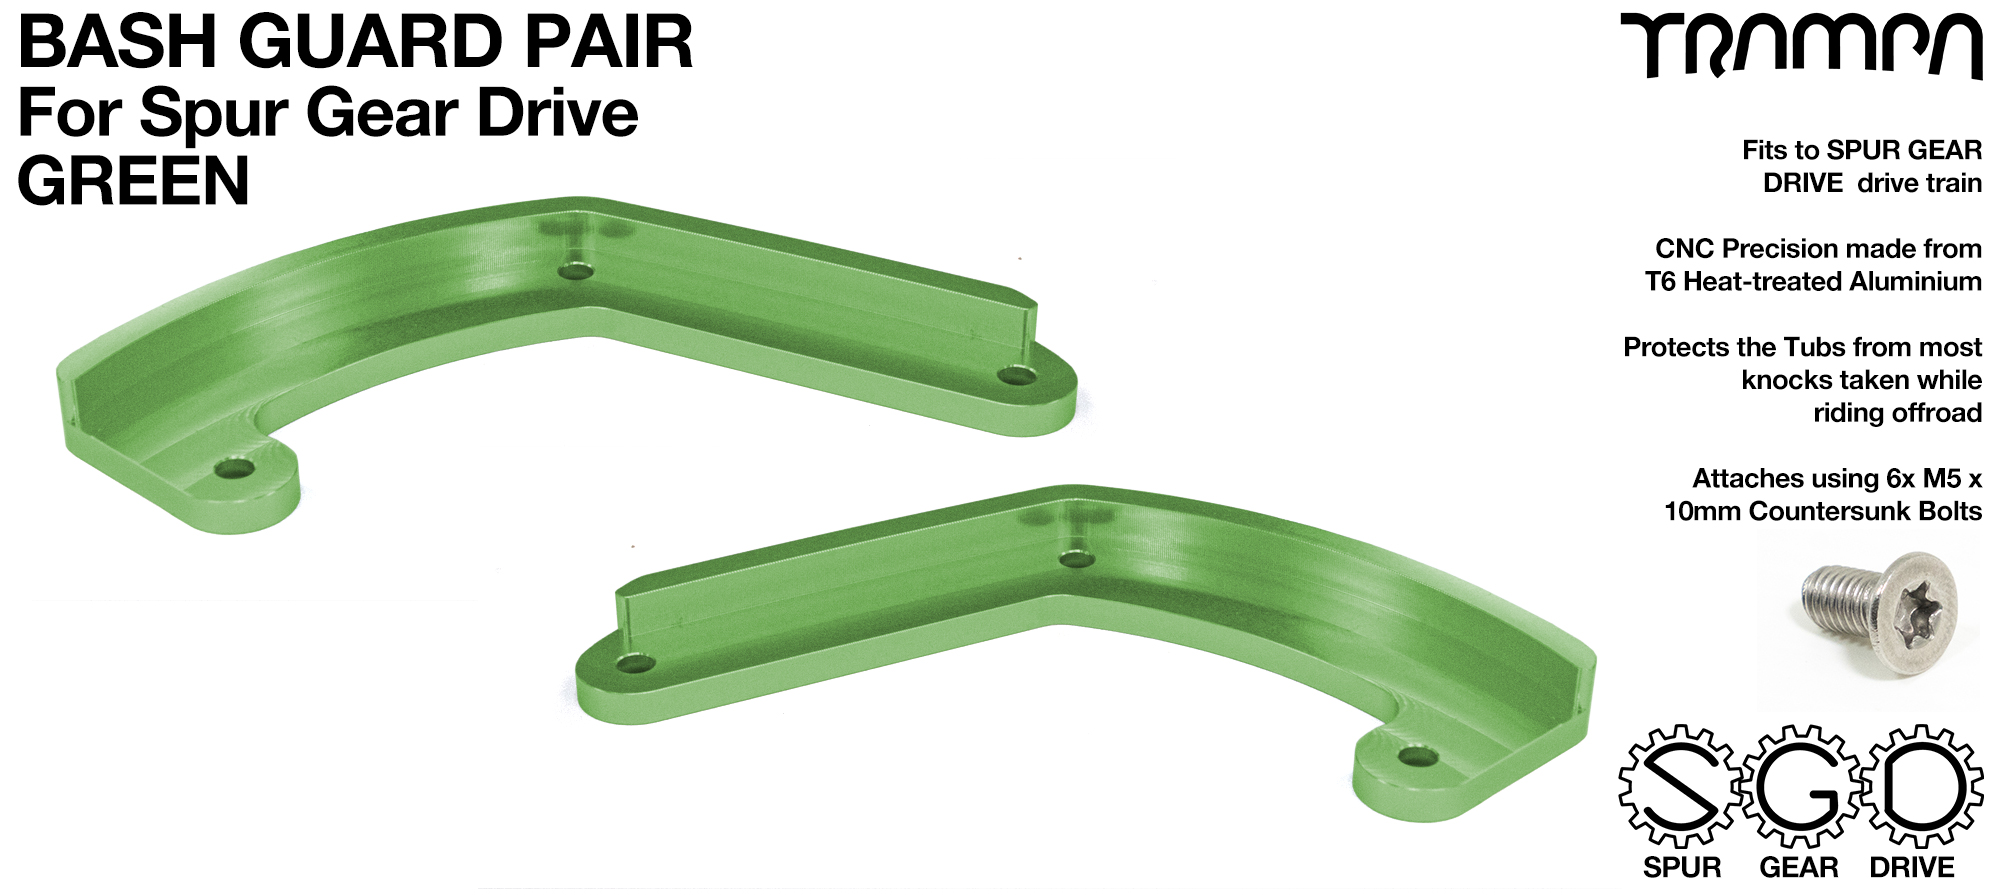 MkII Spur Gear Drive Bash Guards PAIR - GREEN